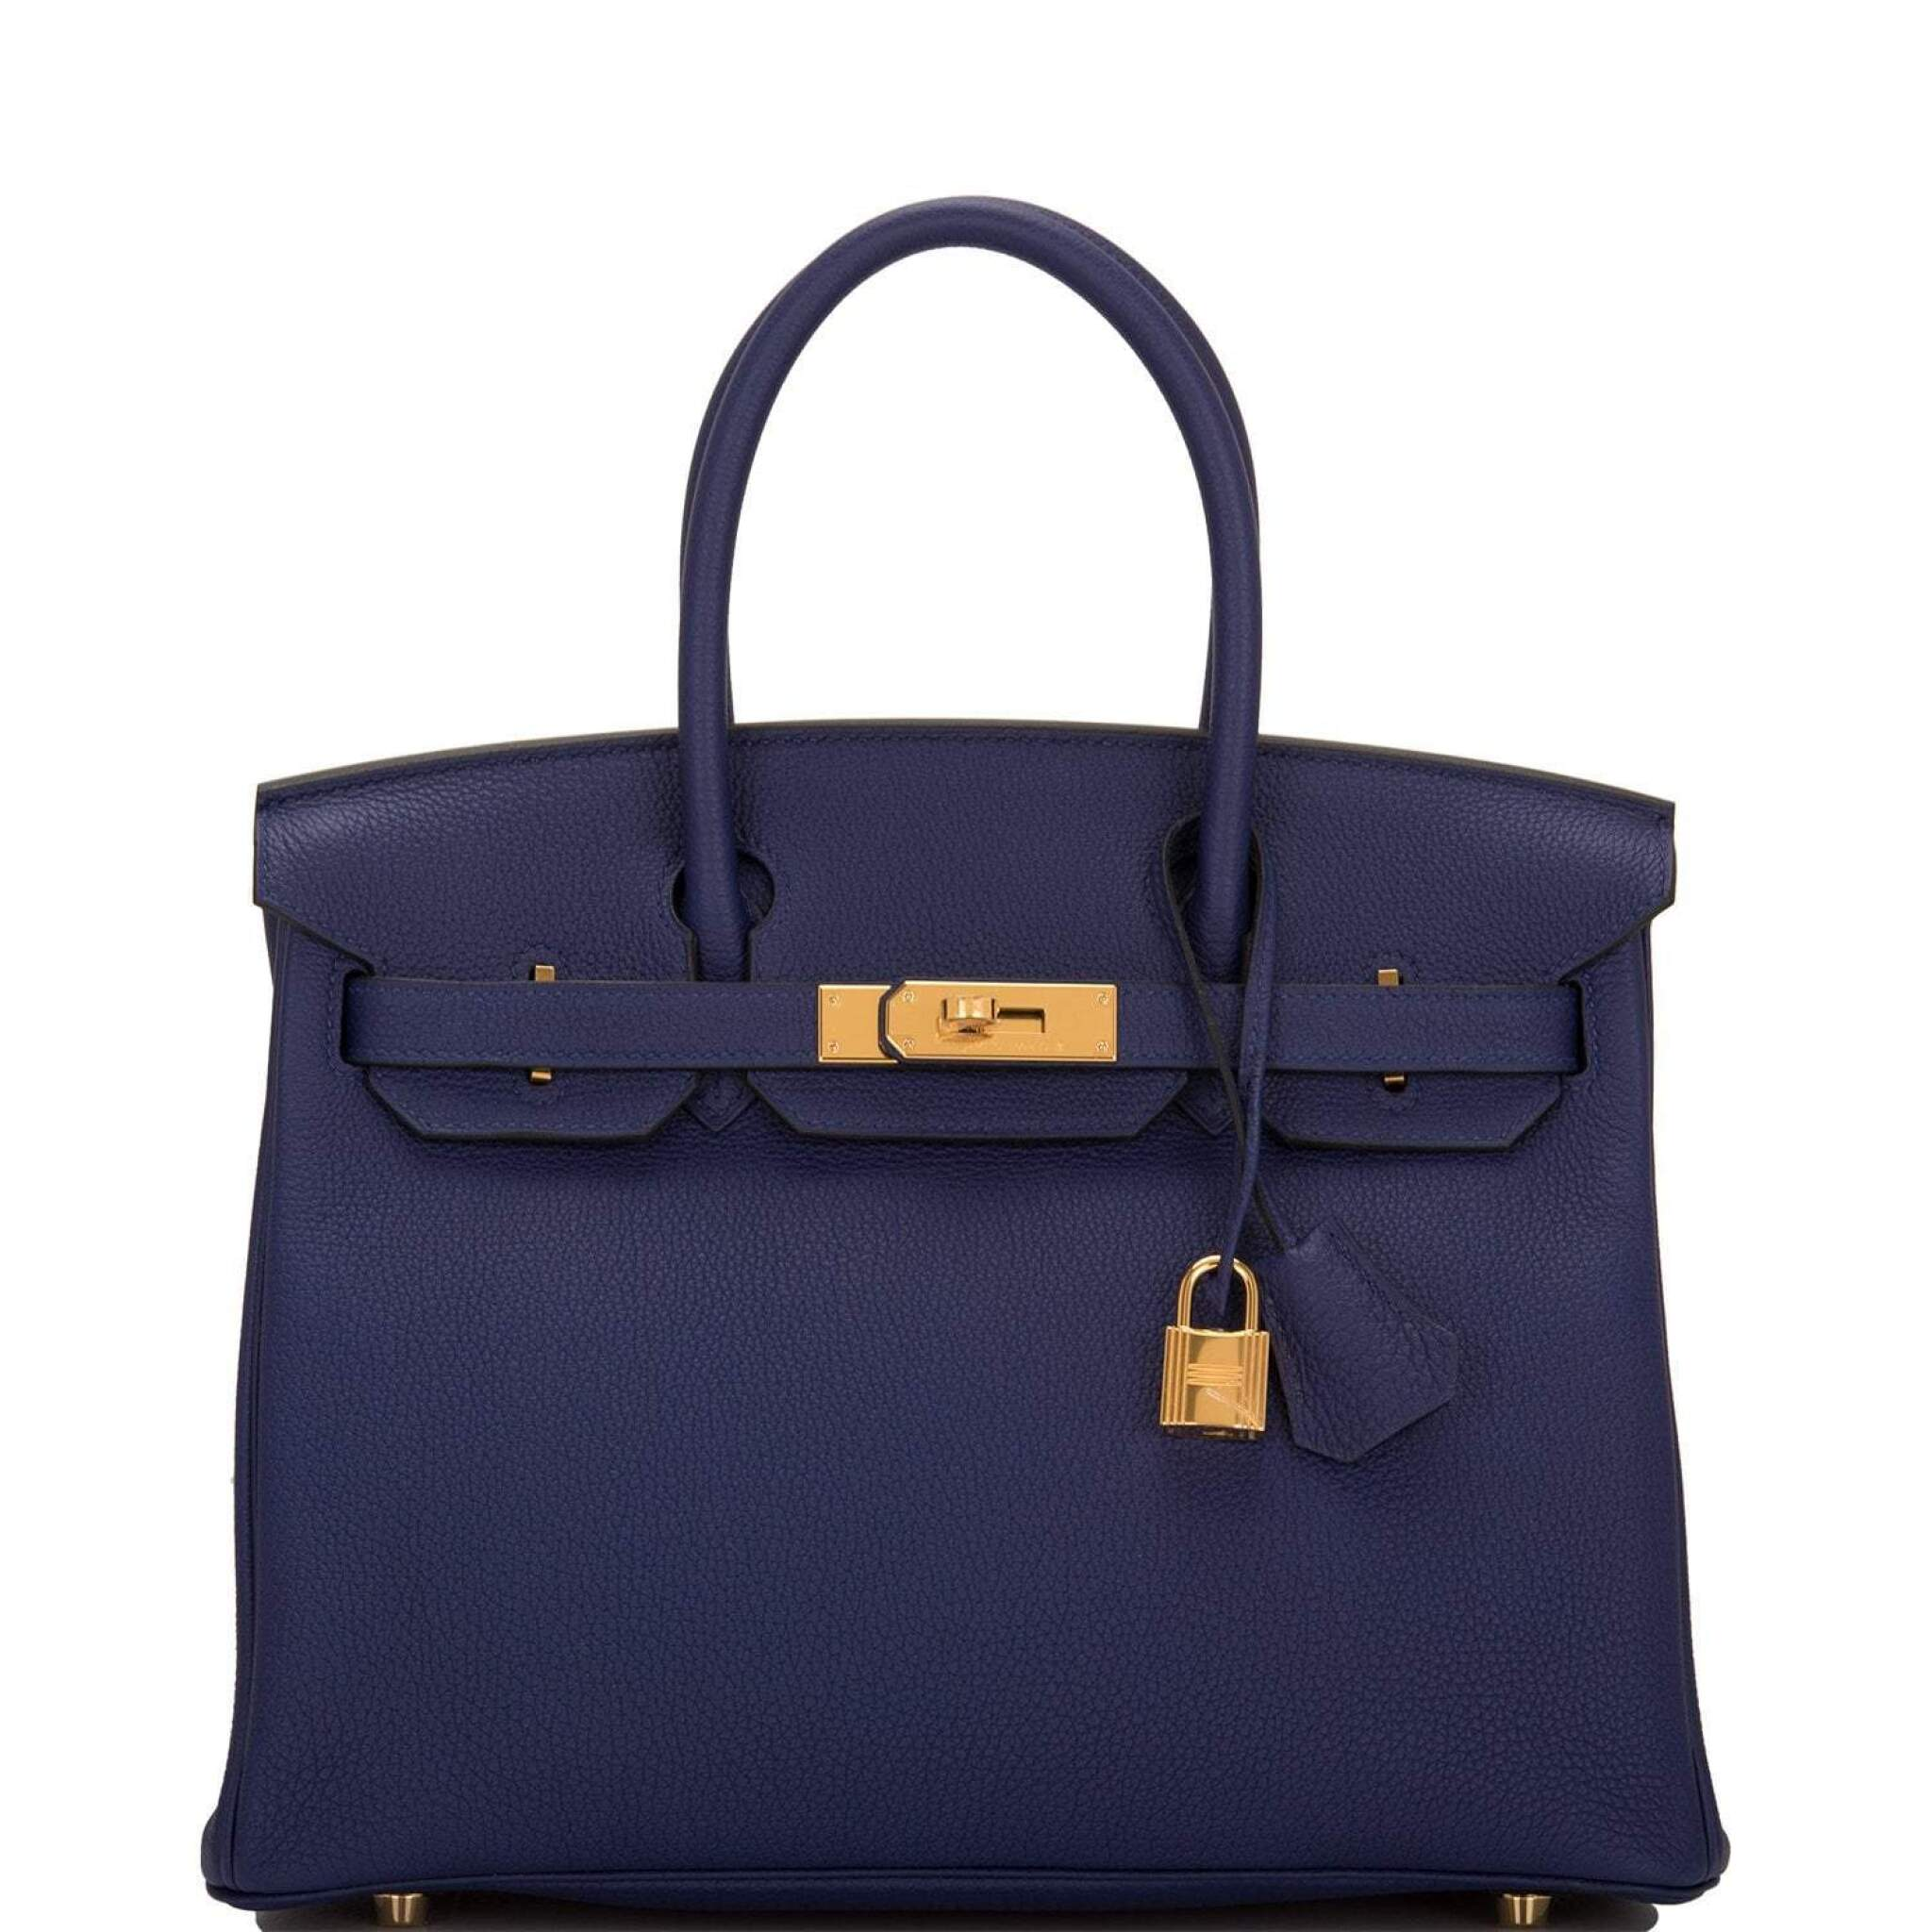 View full screen - View 1 of Lot 5. HERMÈS   BLUE ENCRE BIRKIN 30CM OF TOGO LEATHER WITH GOLD HARDWARE.